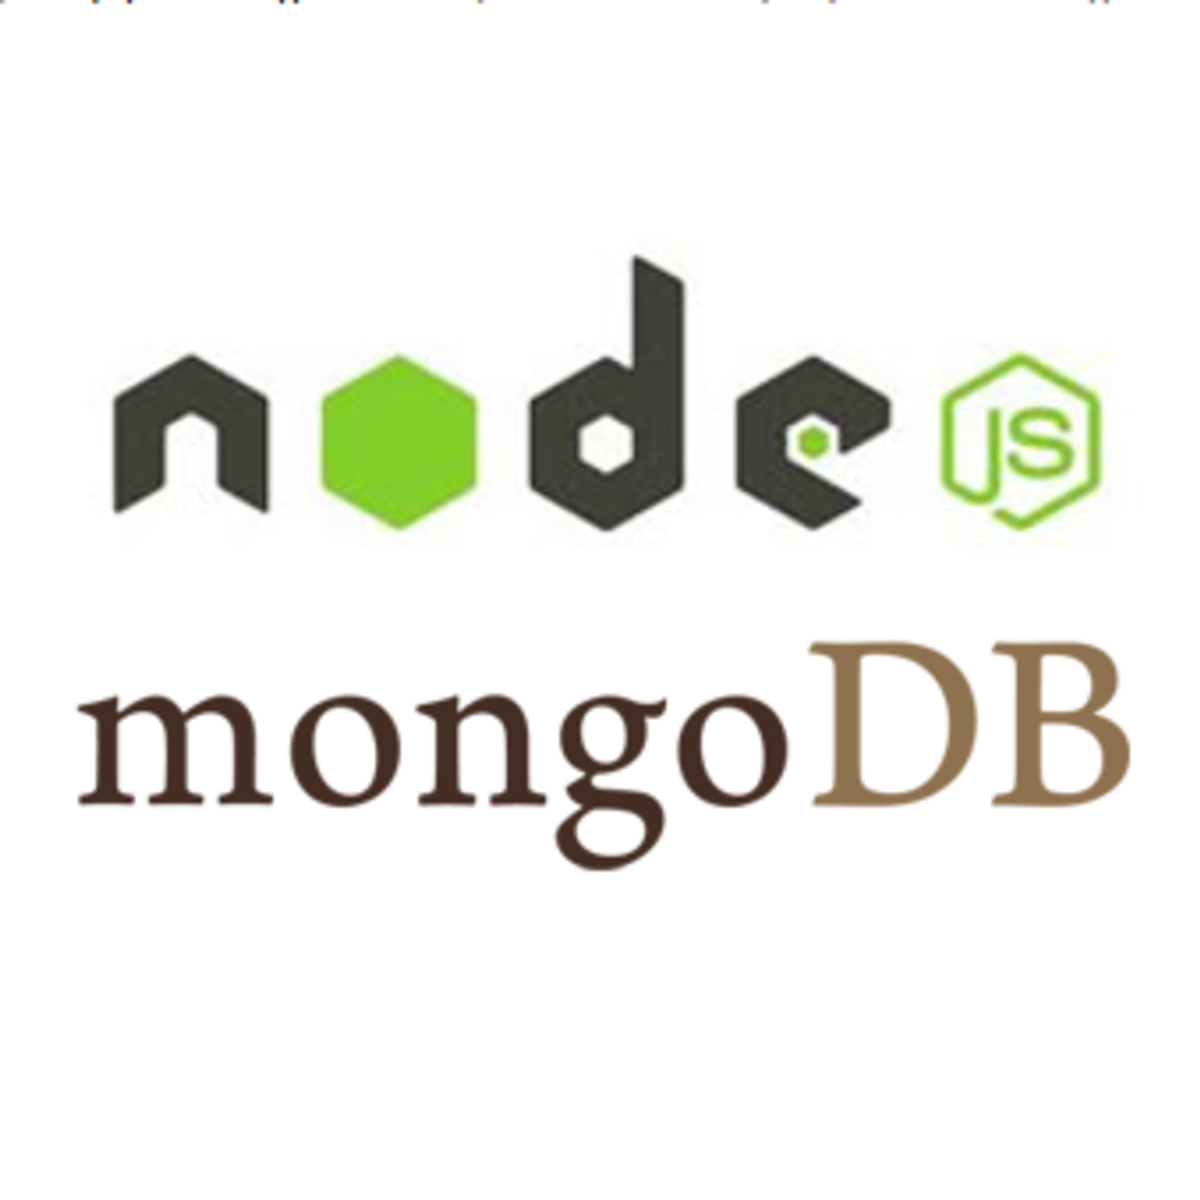 server side development with nodejs the hong kong university of science and technology coursera